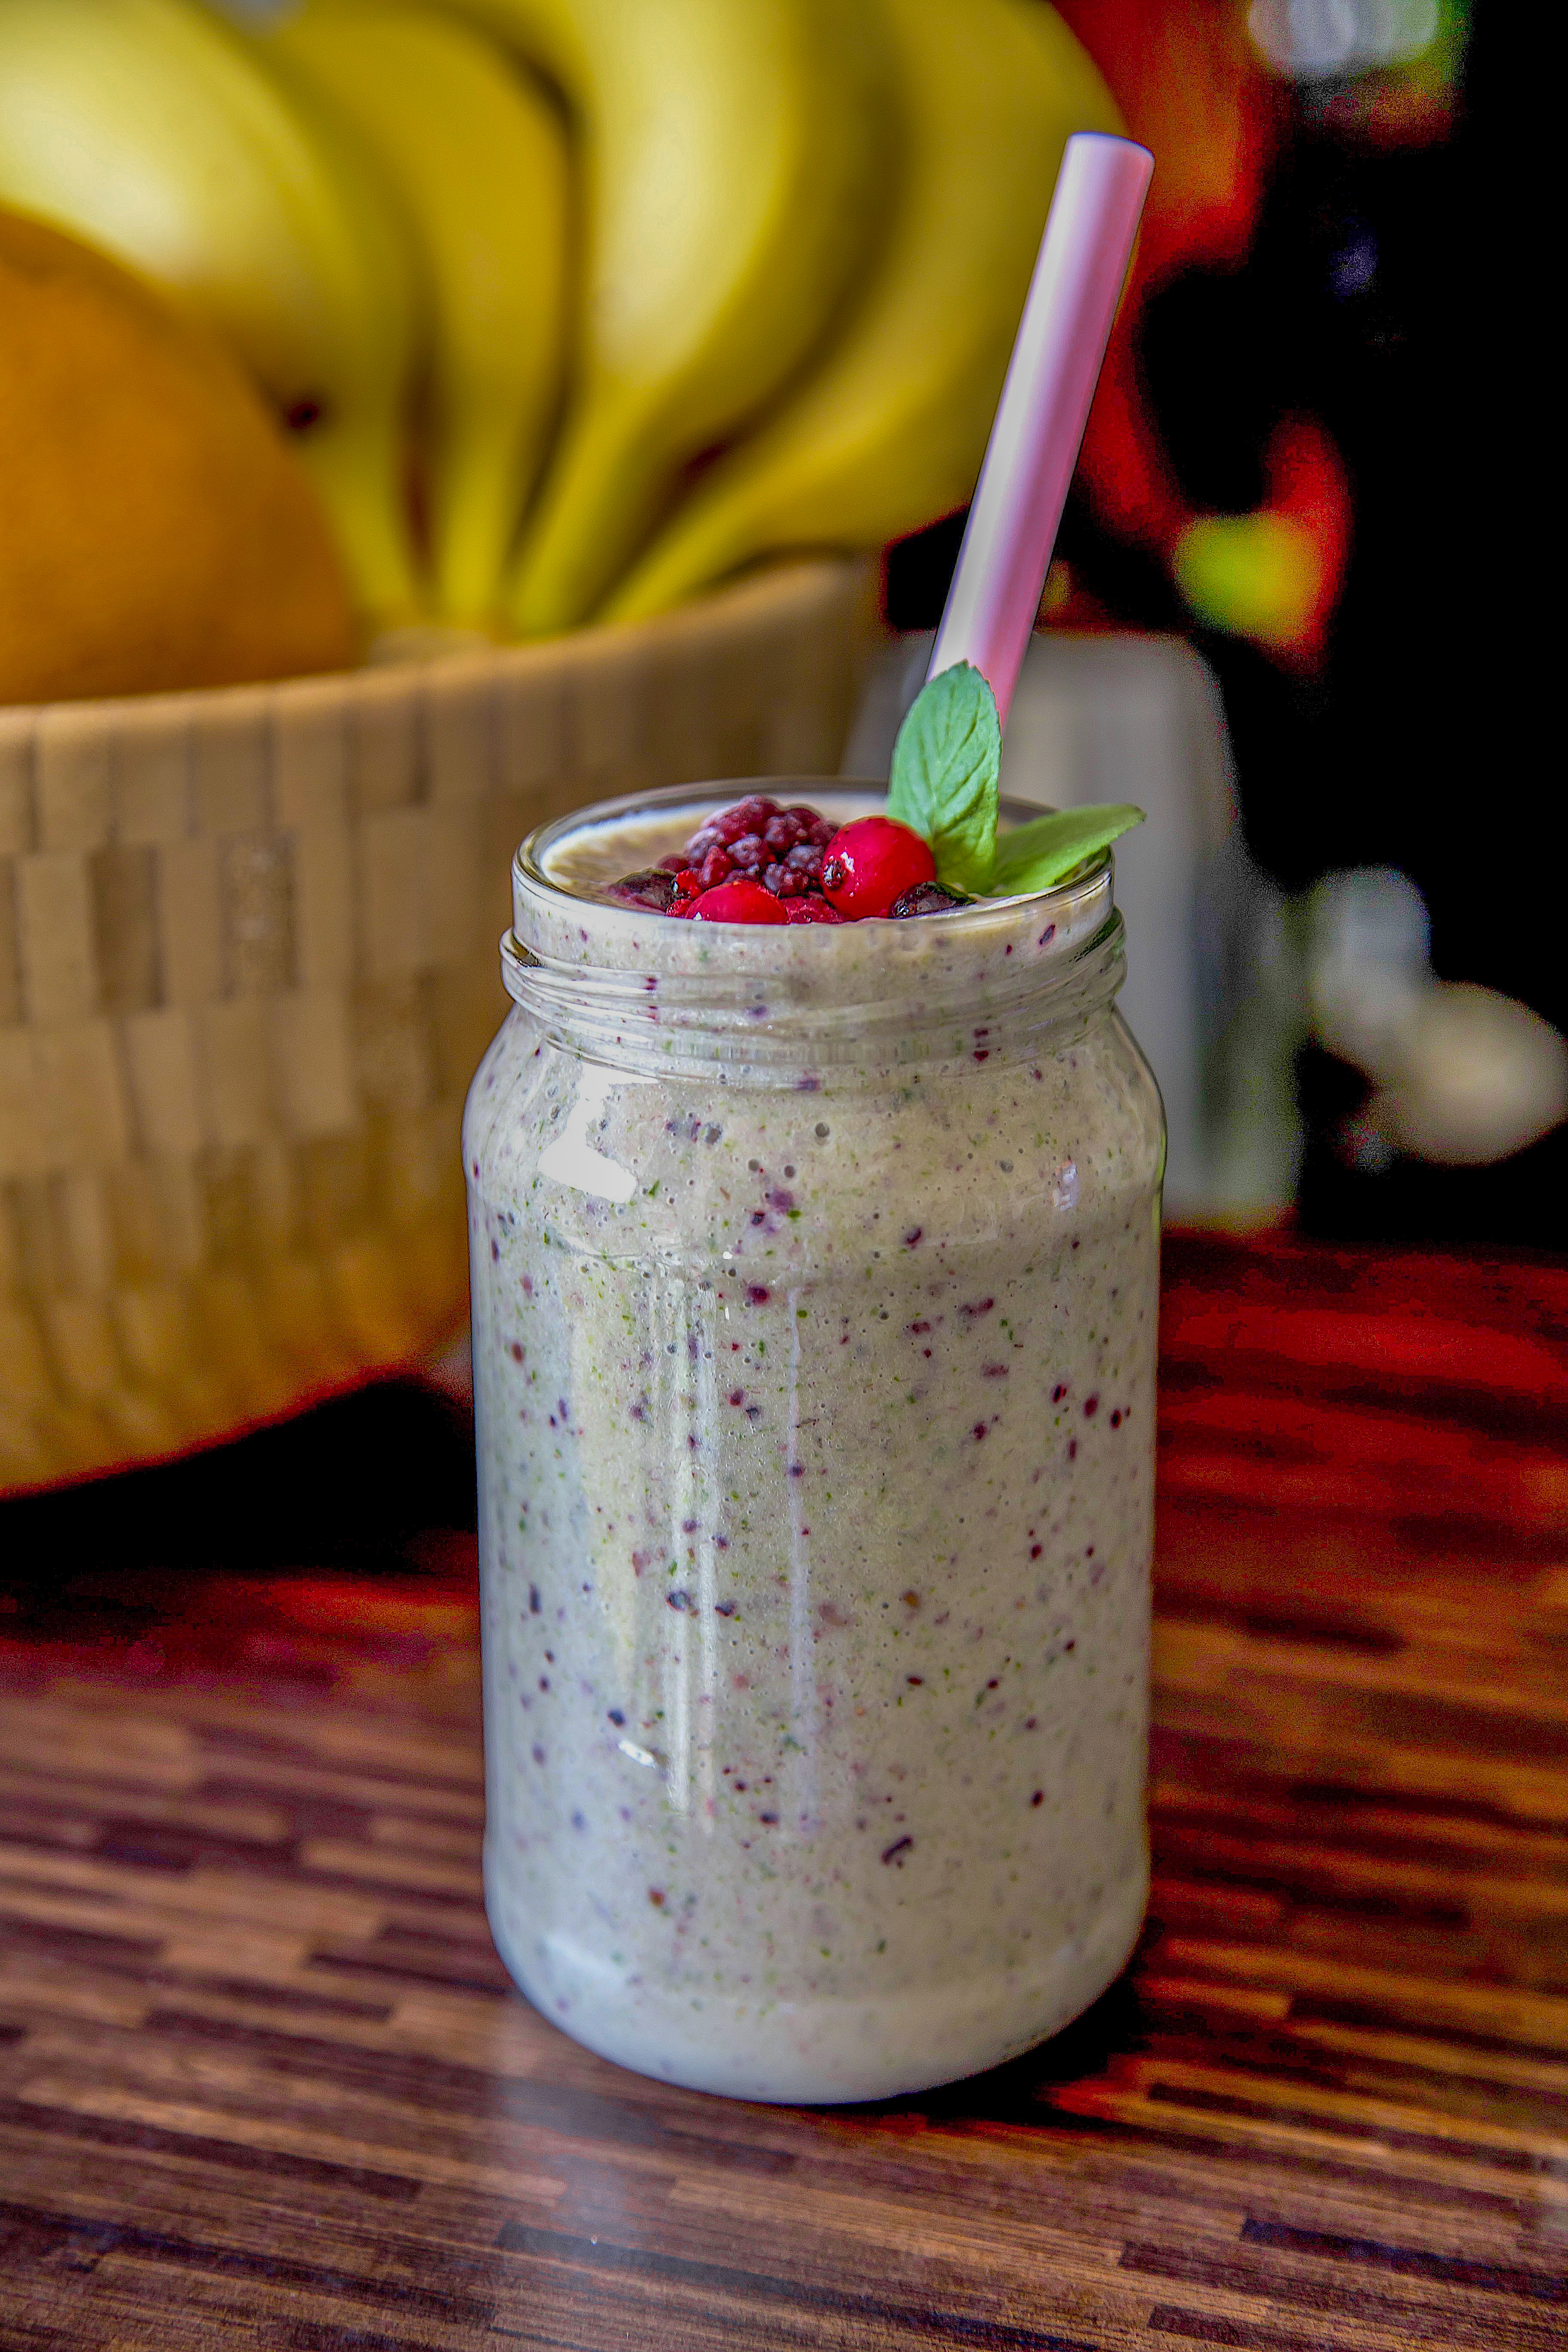 Healthy Smoothie Recipe: Pineapple – Banana – Dates Smoothie